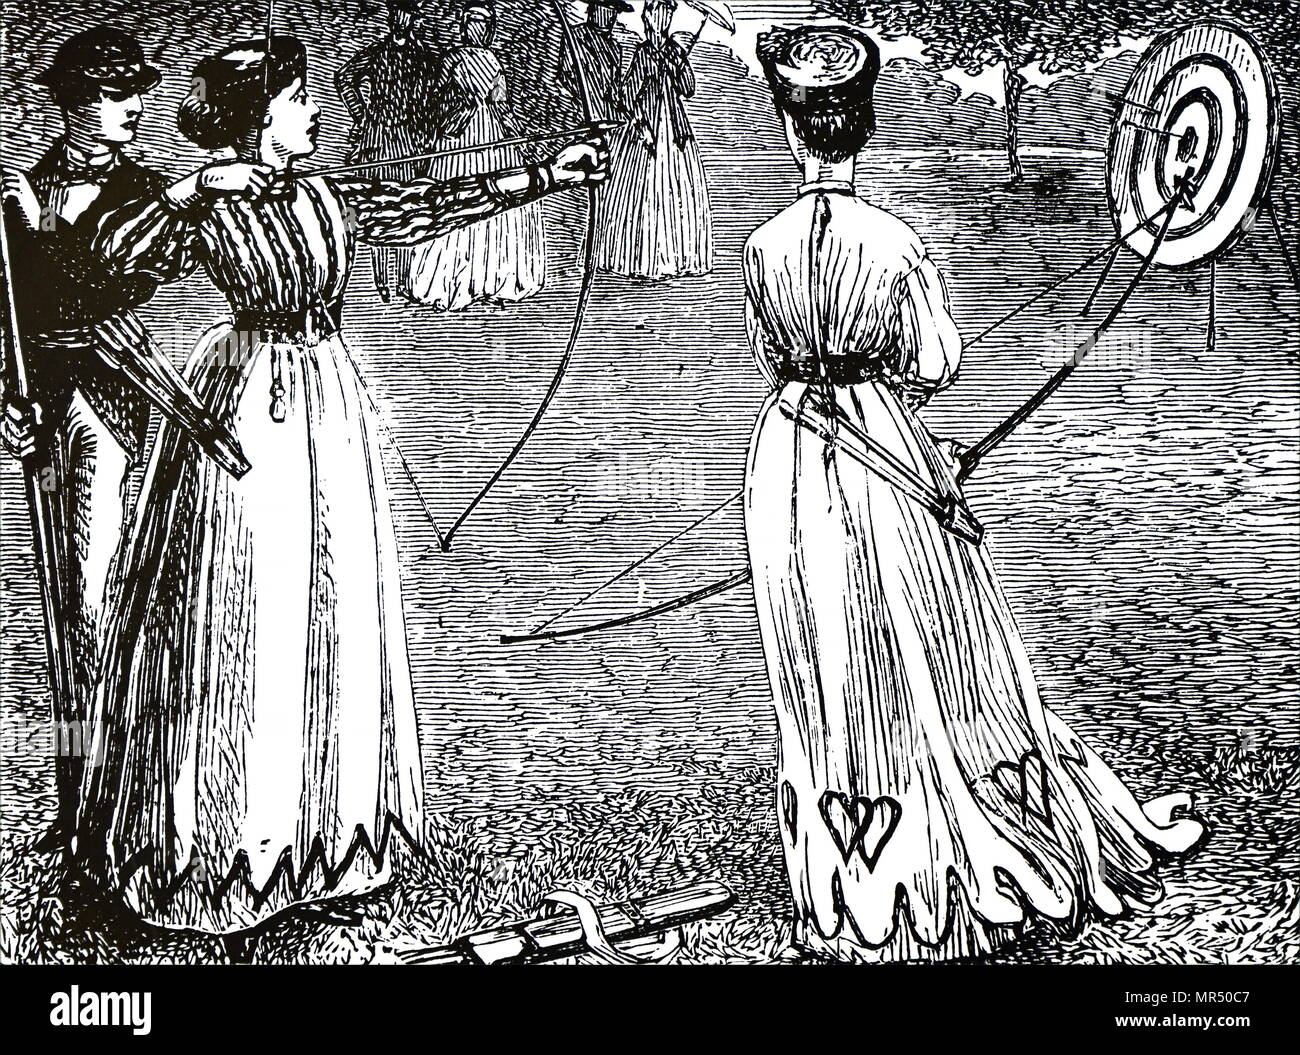 Engraving depicting young ladies practising their archery skills. Dated 19th century - Stock Image